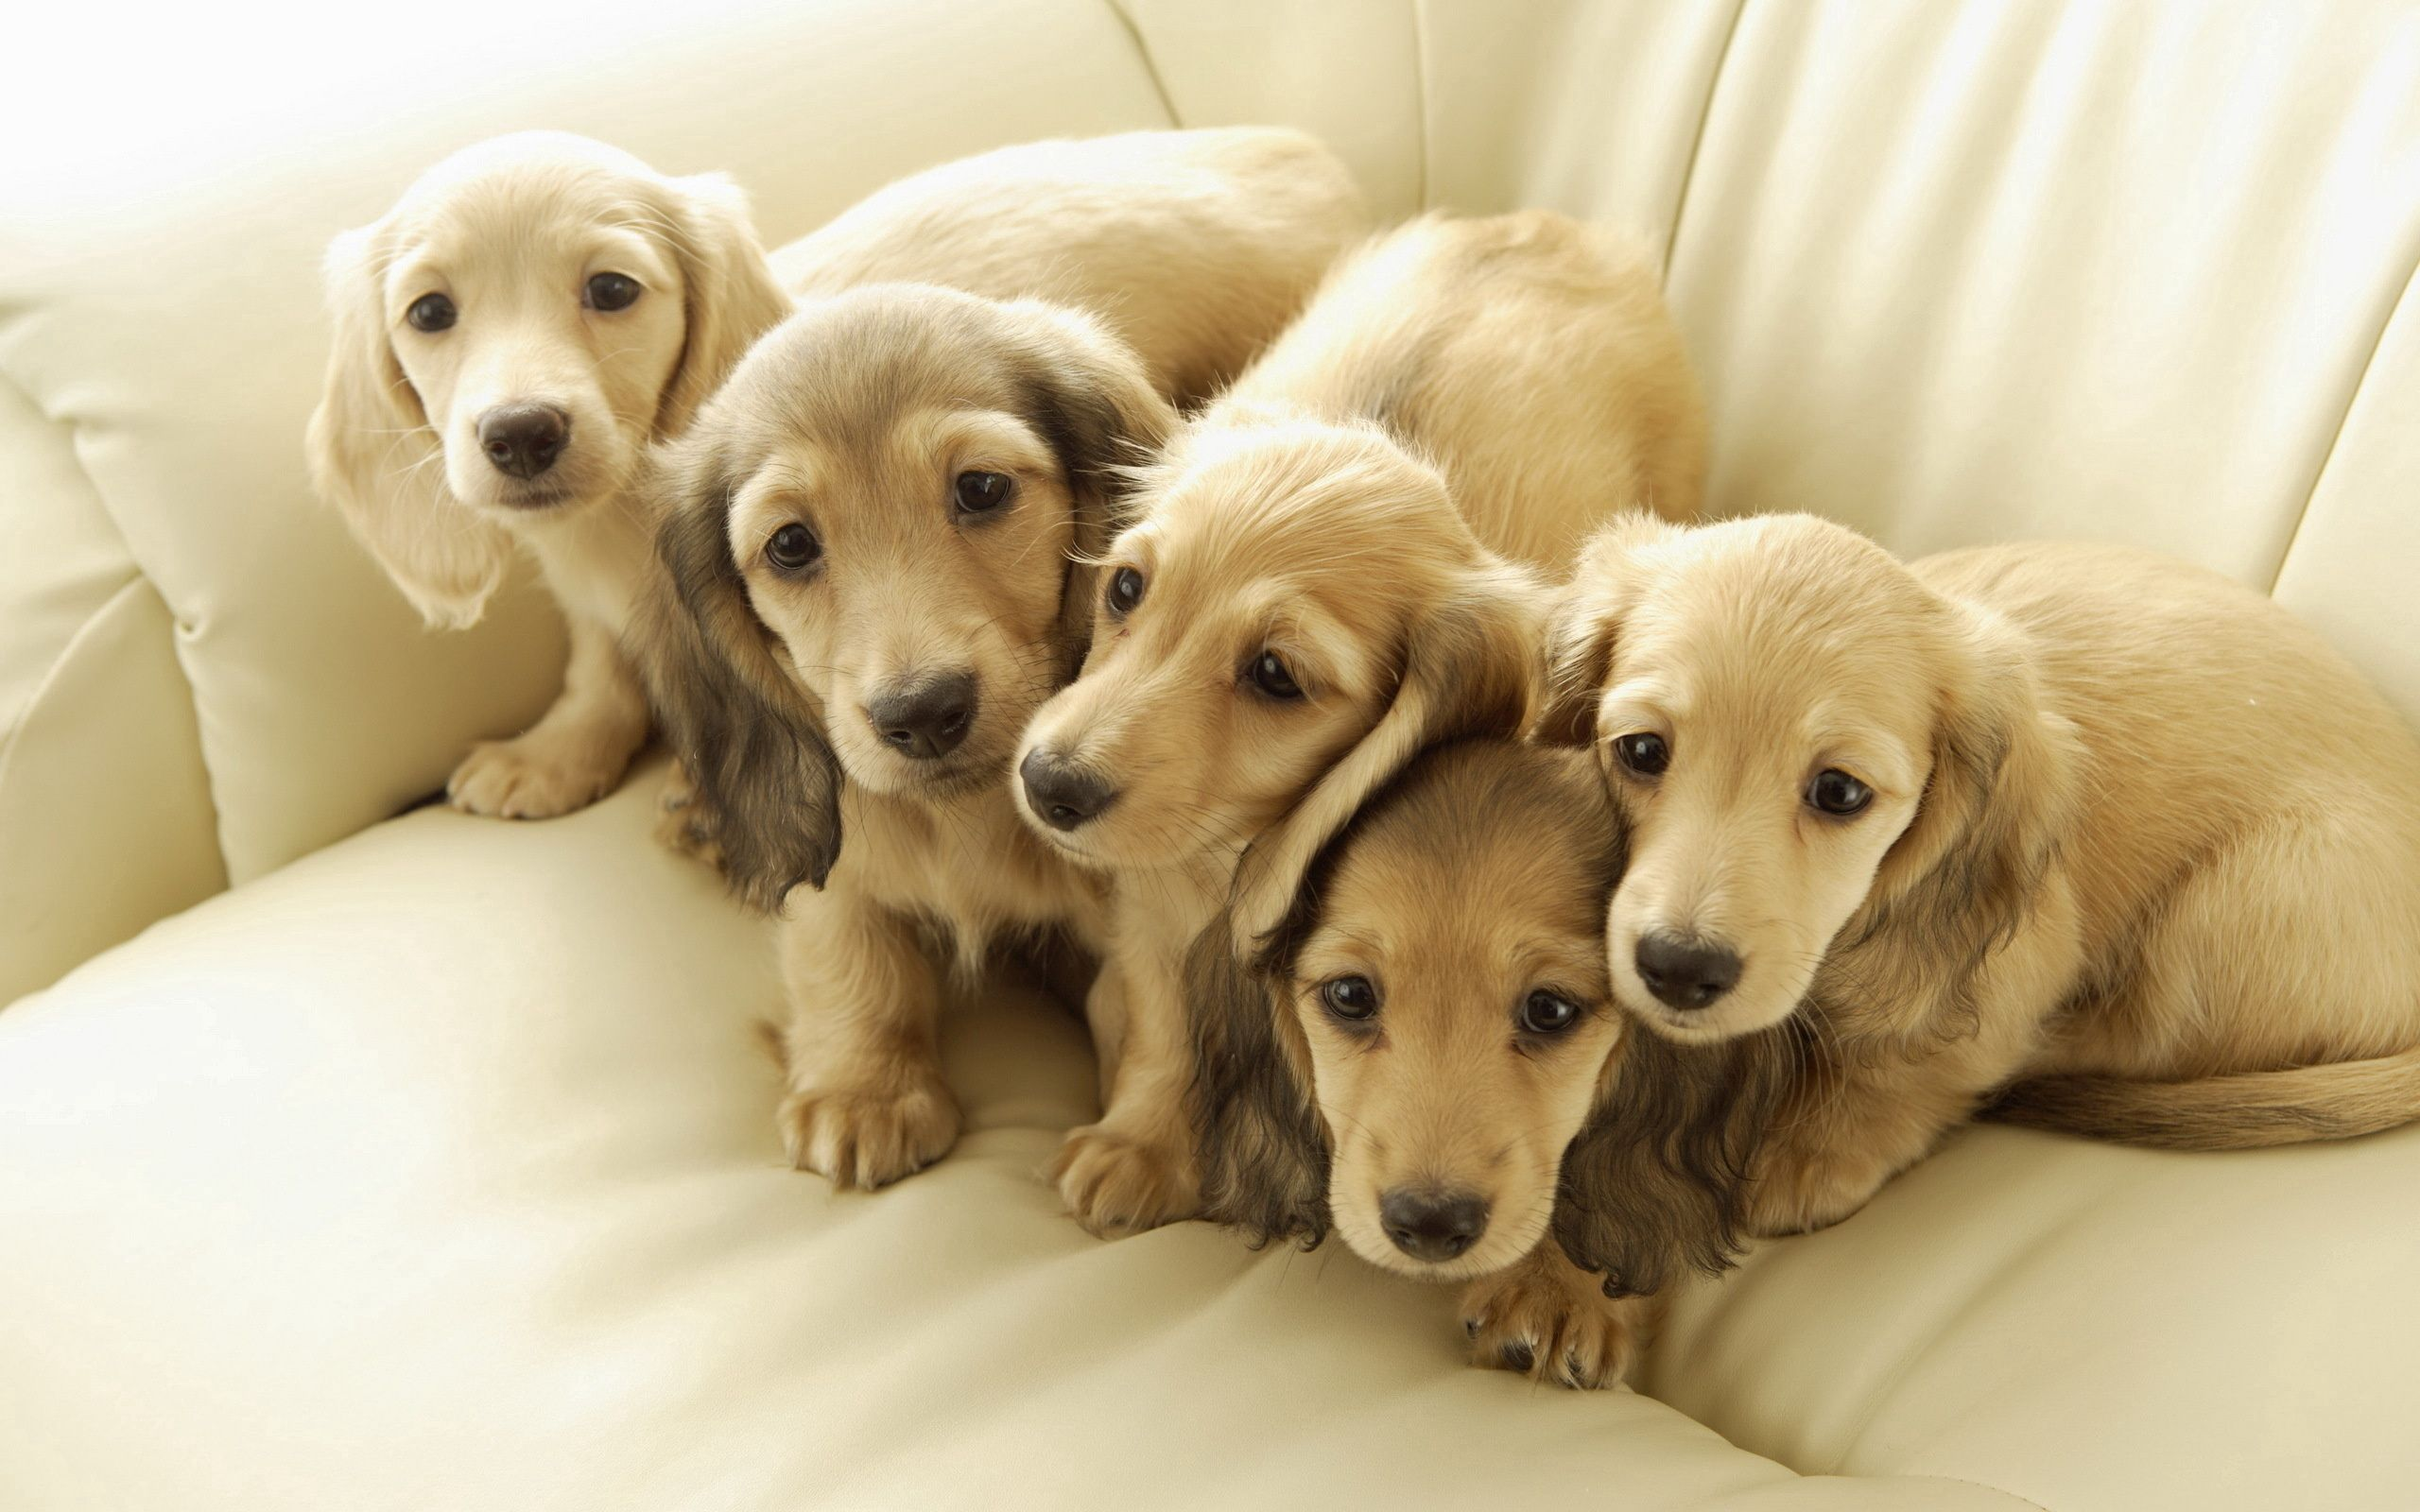 110761 download wallpaper Animals, Dogs, Friends, Puppies screensavers and pictures for free